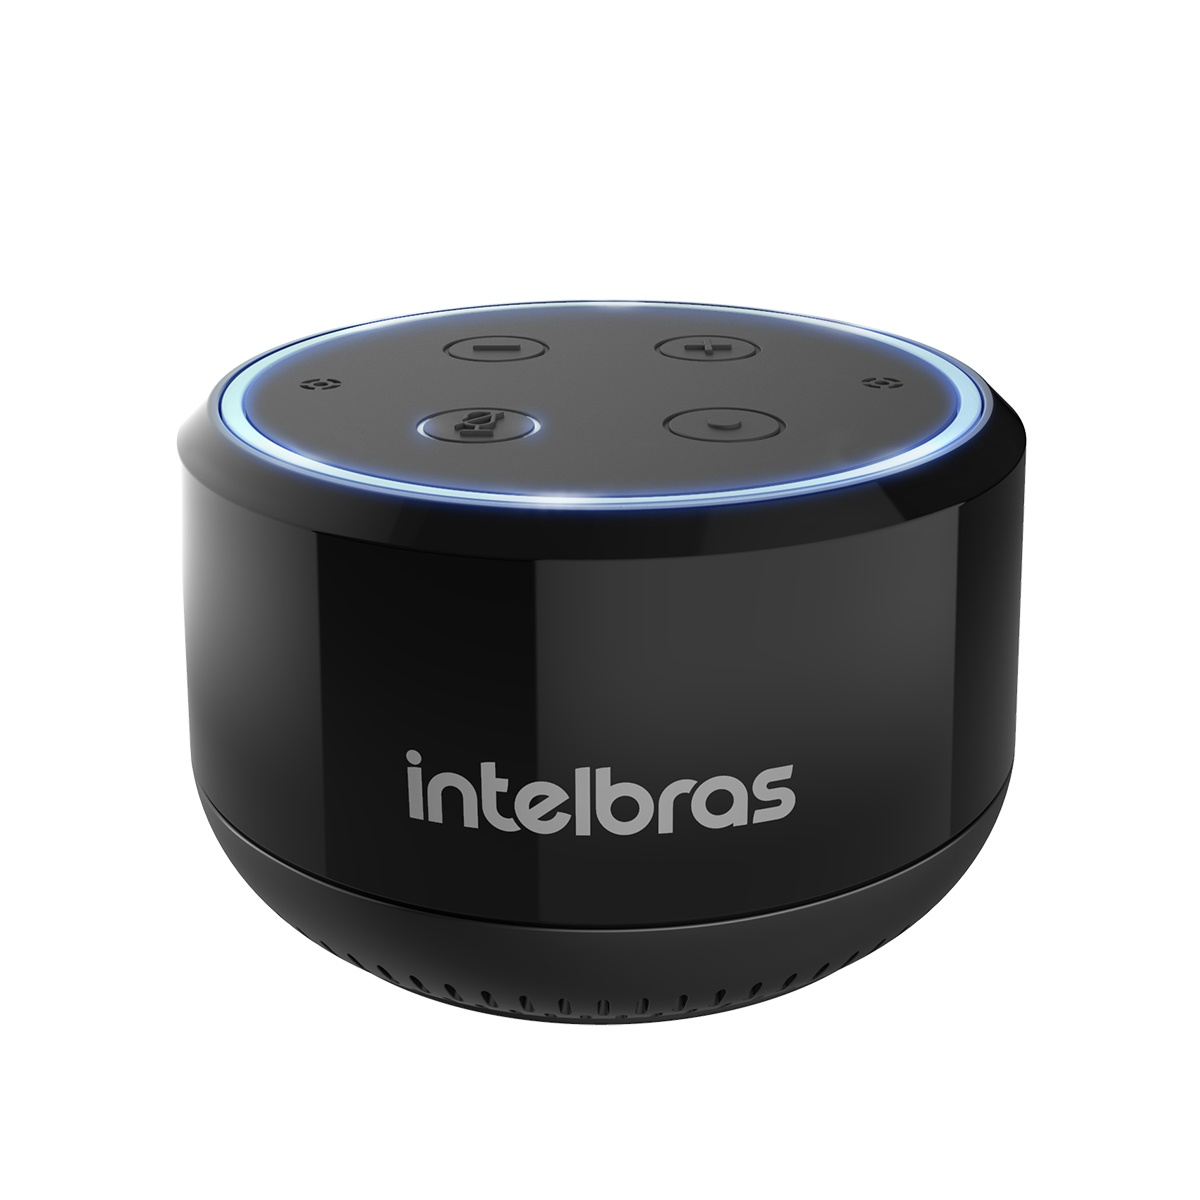 Smart Speaker Intelbras - IZY Speak! mini